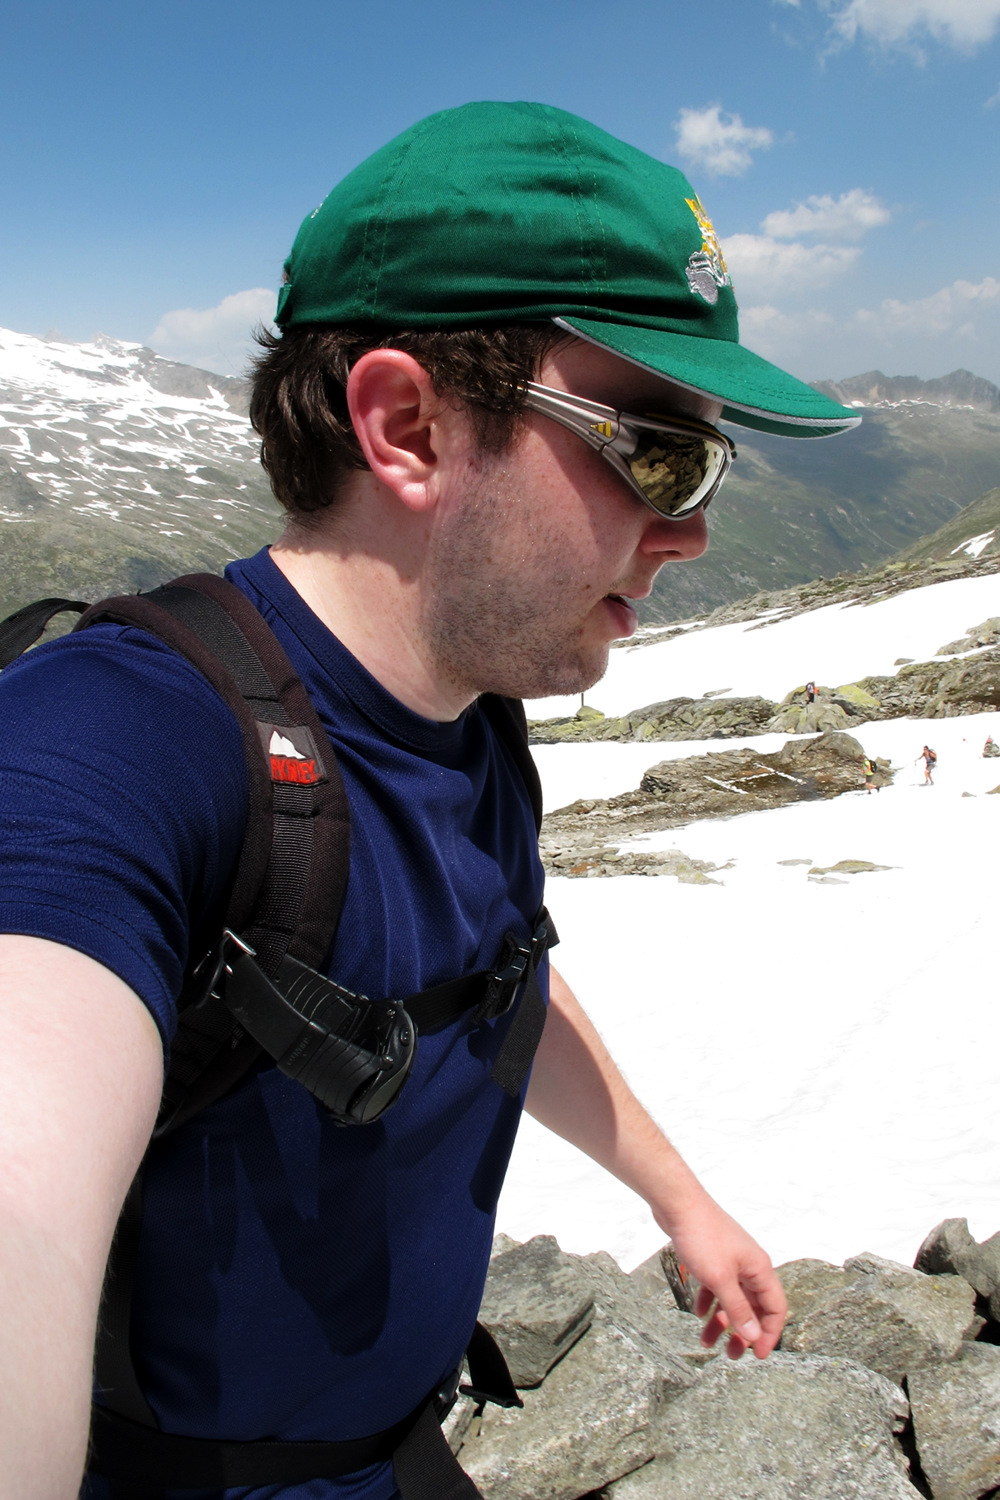 Me, hiking on snow just below the Krimml Tauern pass.